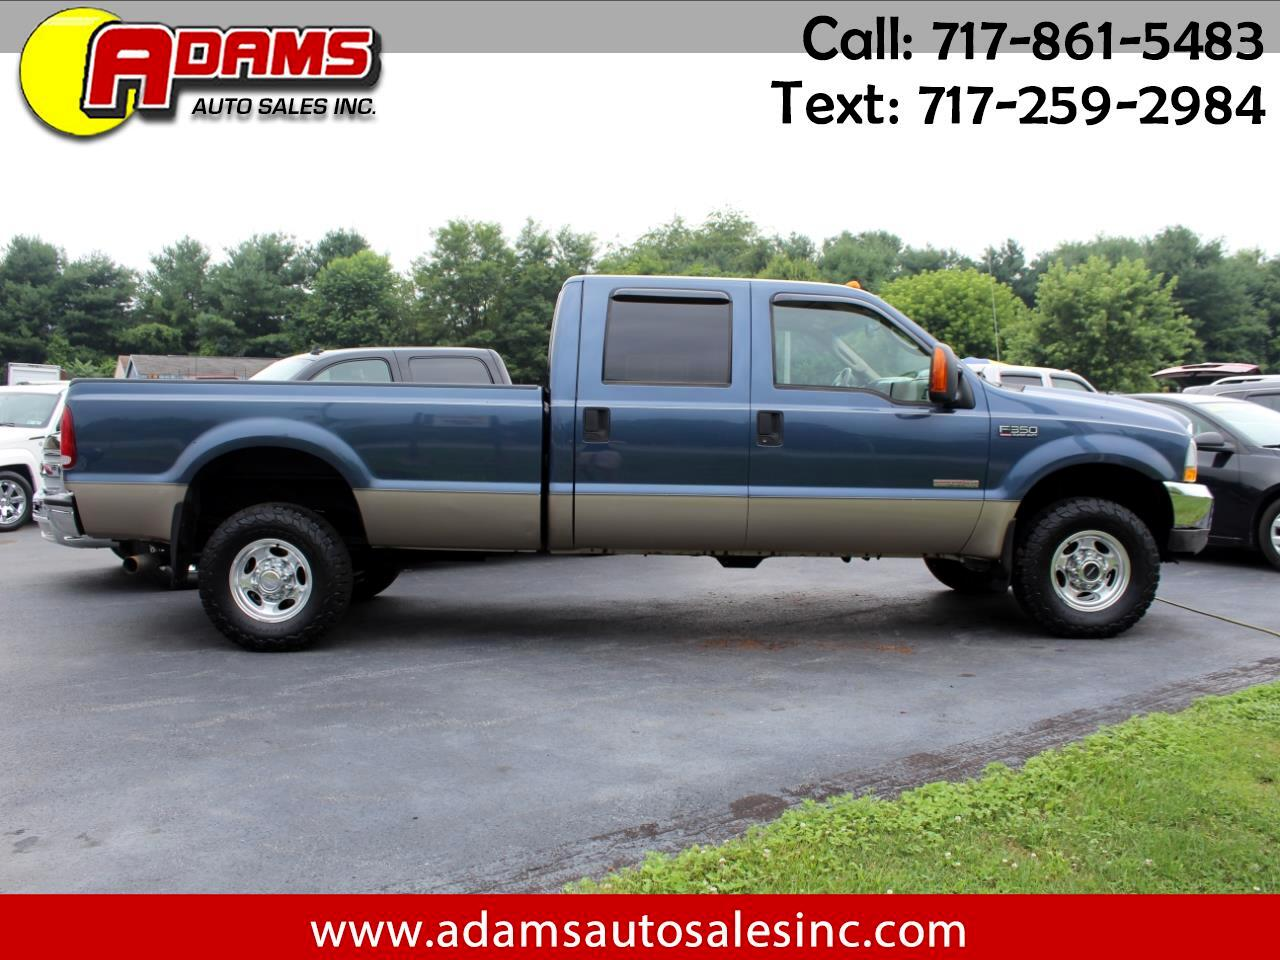 2004 Ford Super Duty F-350 SRW 4WD Crew Cab 172